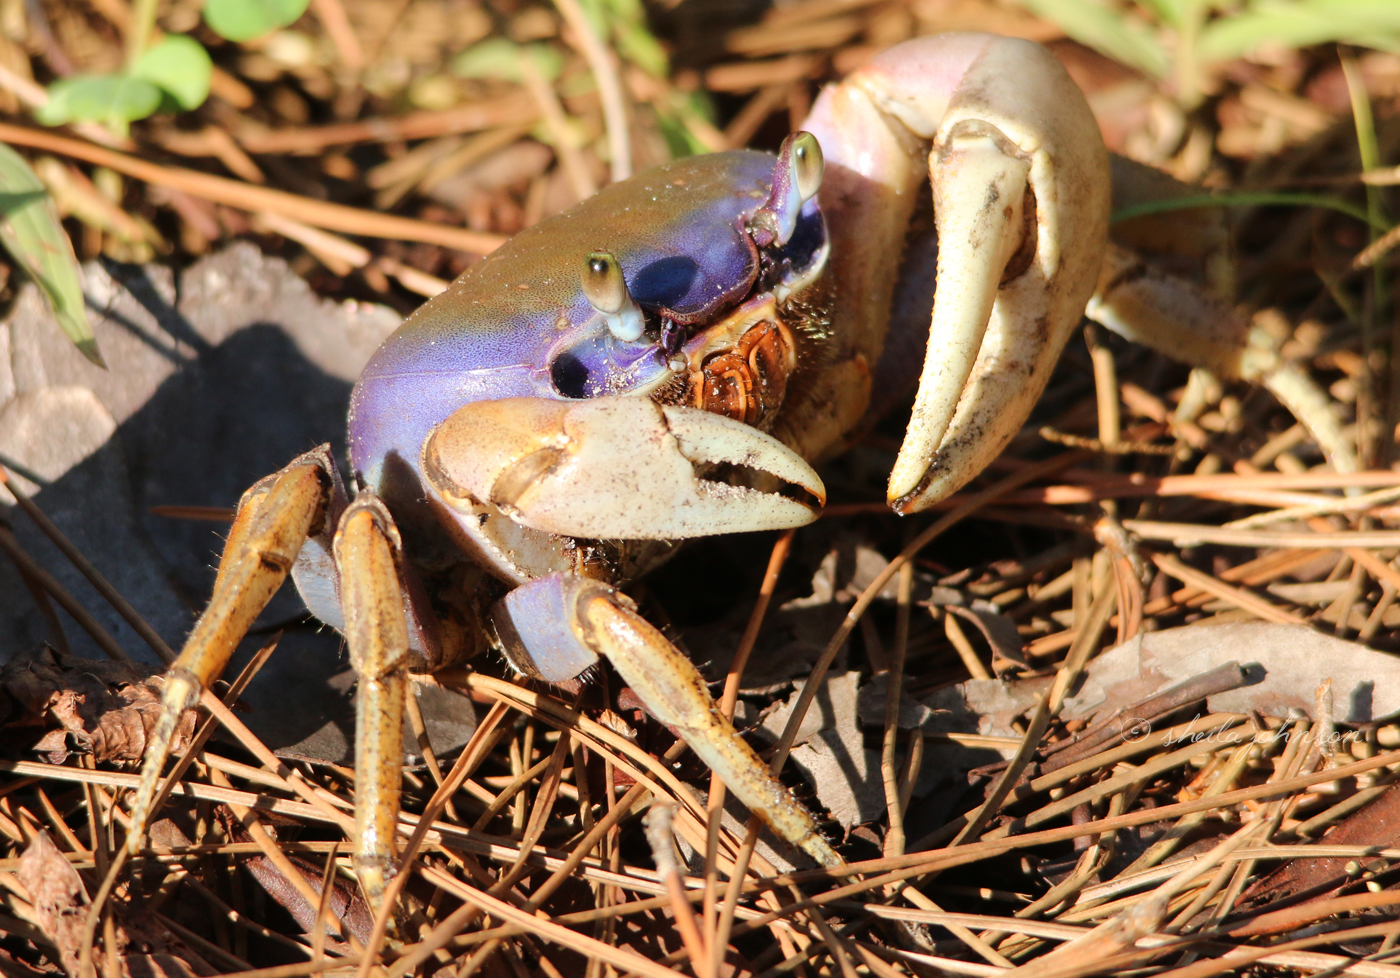 Some Septembers, Us Floridians Living Near The St. Lucie River Will Find Hundreds Of These Land Crabs Migrating To The River To Breed. It's A Troublesome Time For Us Humans Who Attempt To Navigate Between Them. But Can You Imagine Being One Of Them Navigating Between Us?